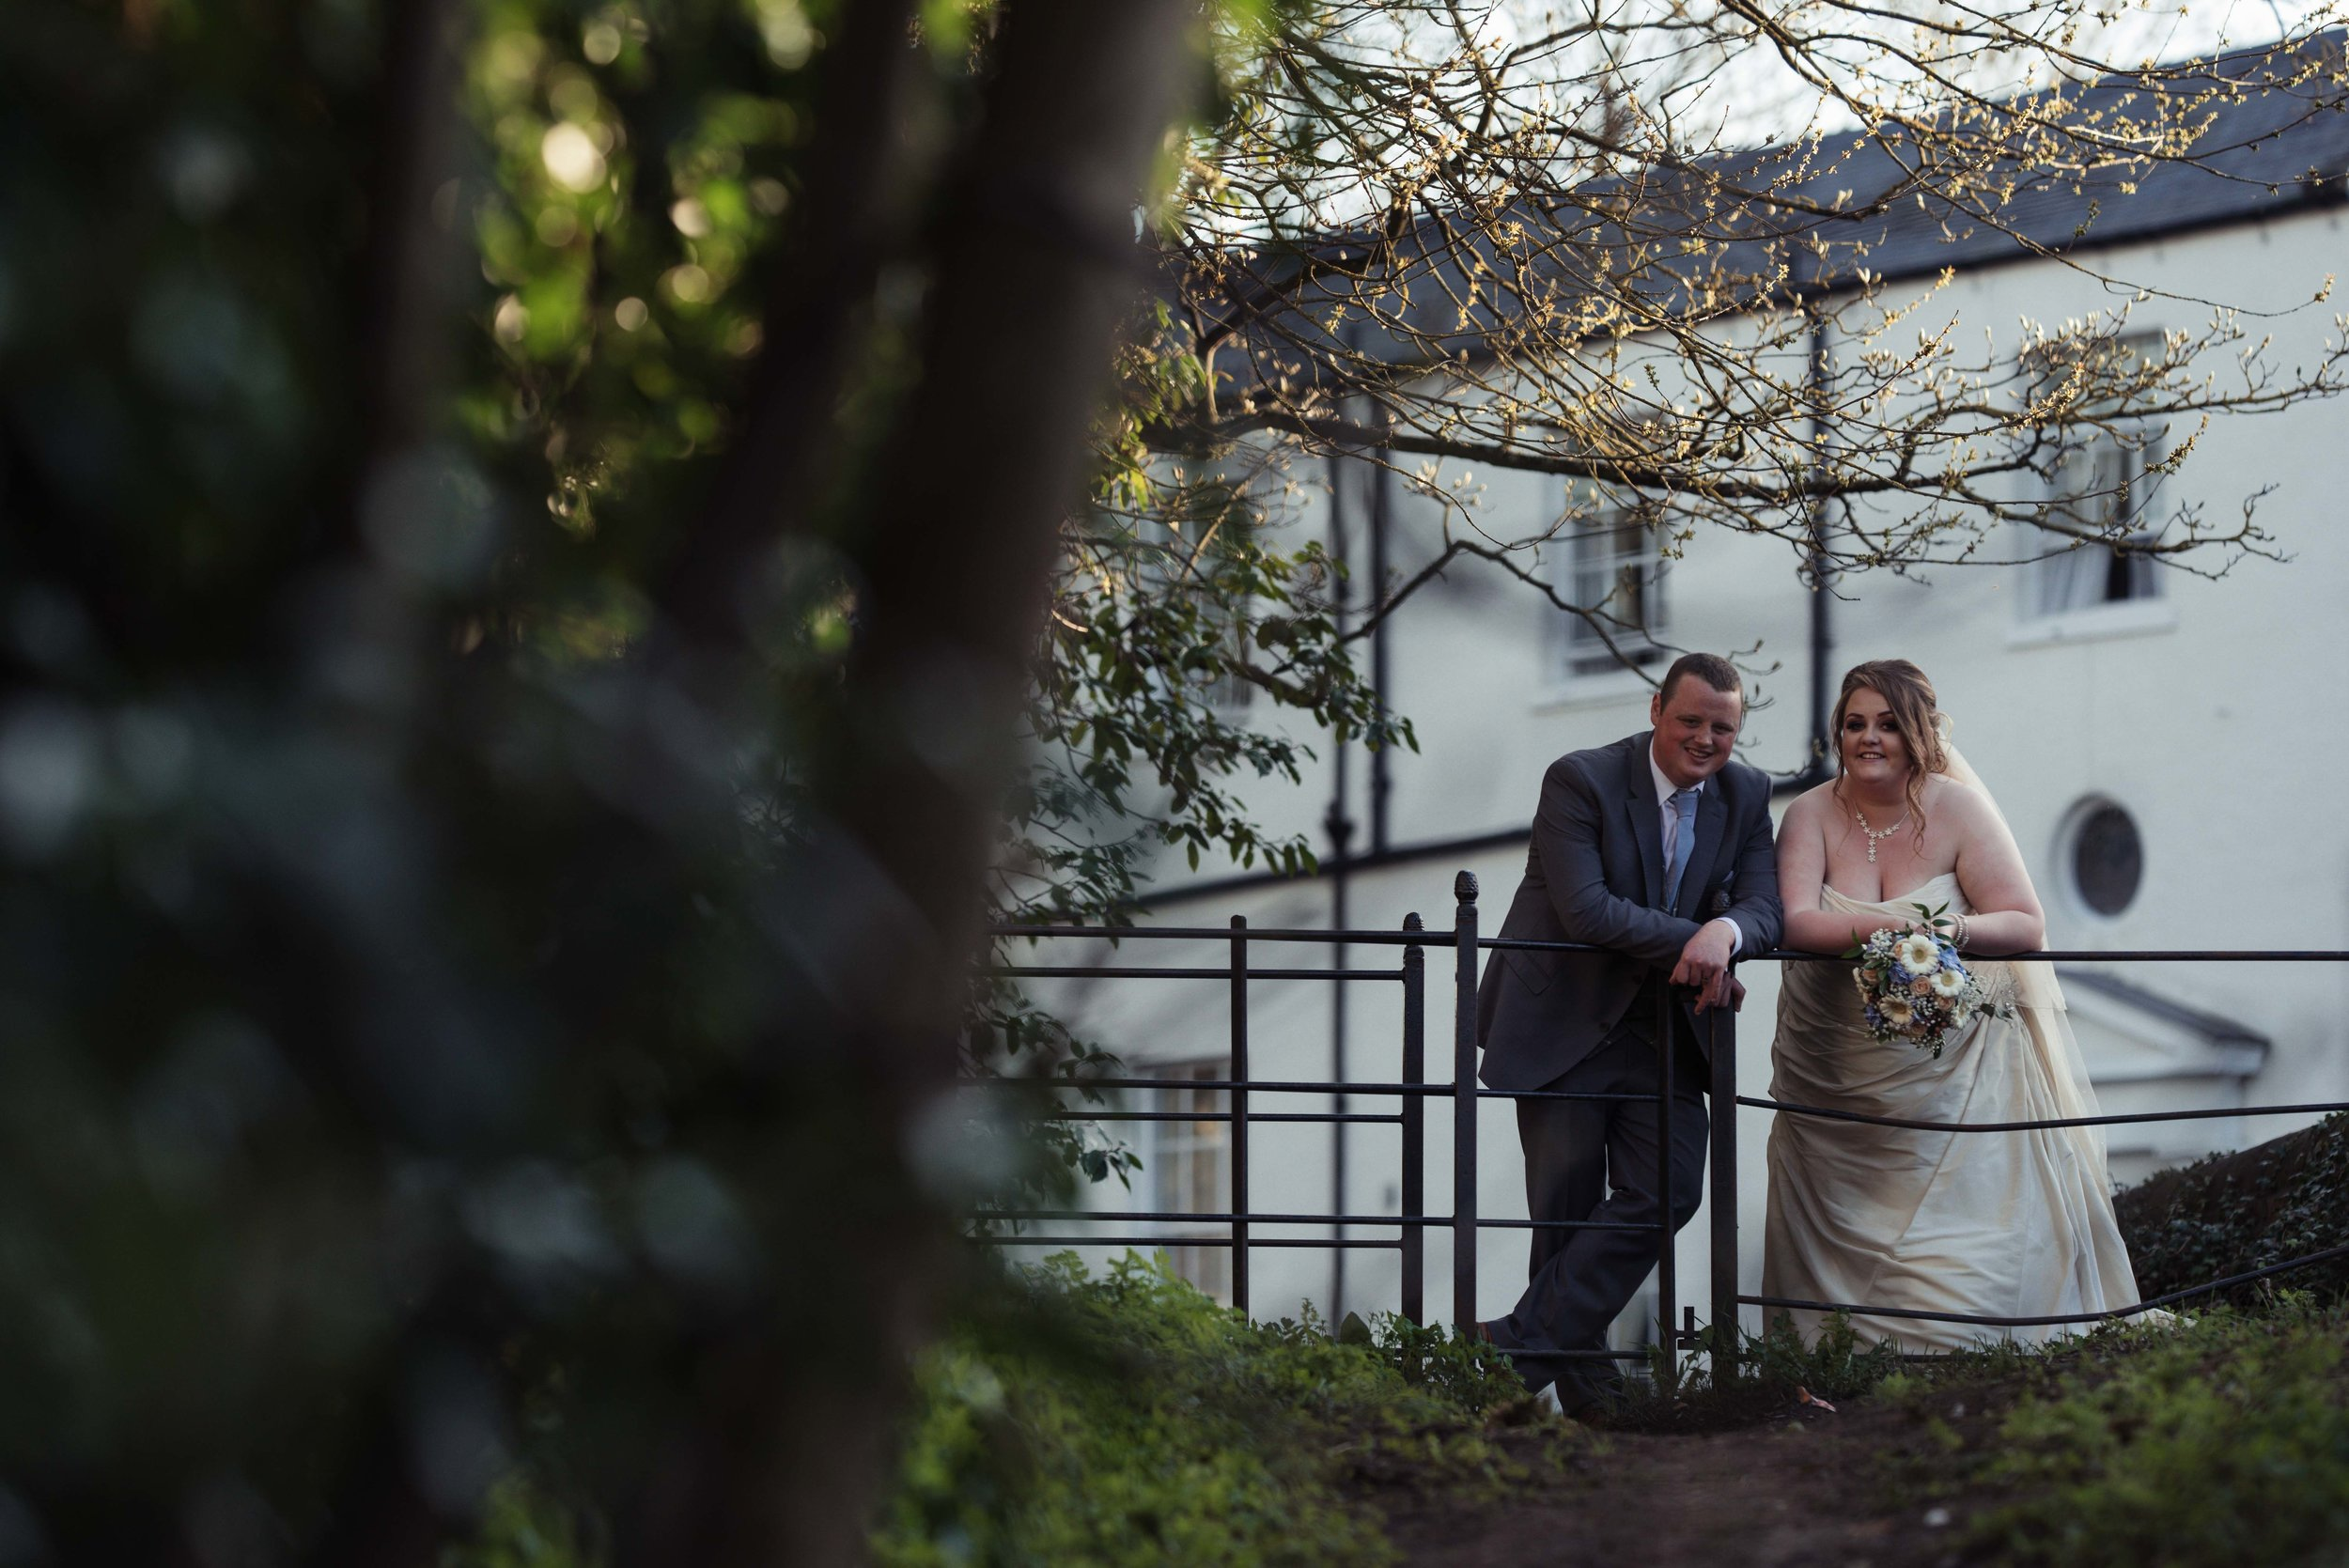 The bride and groom lean on a fence during their wedding photography